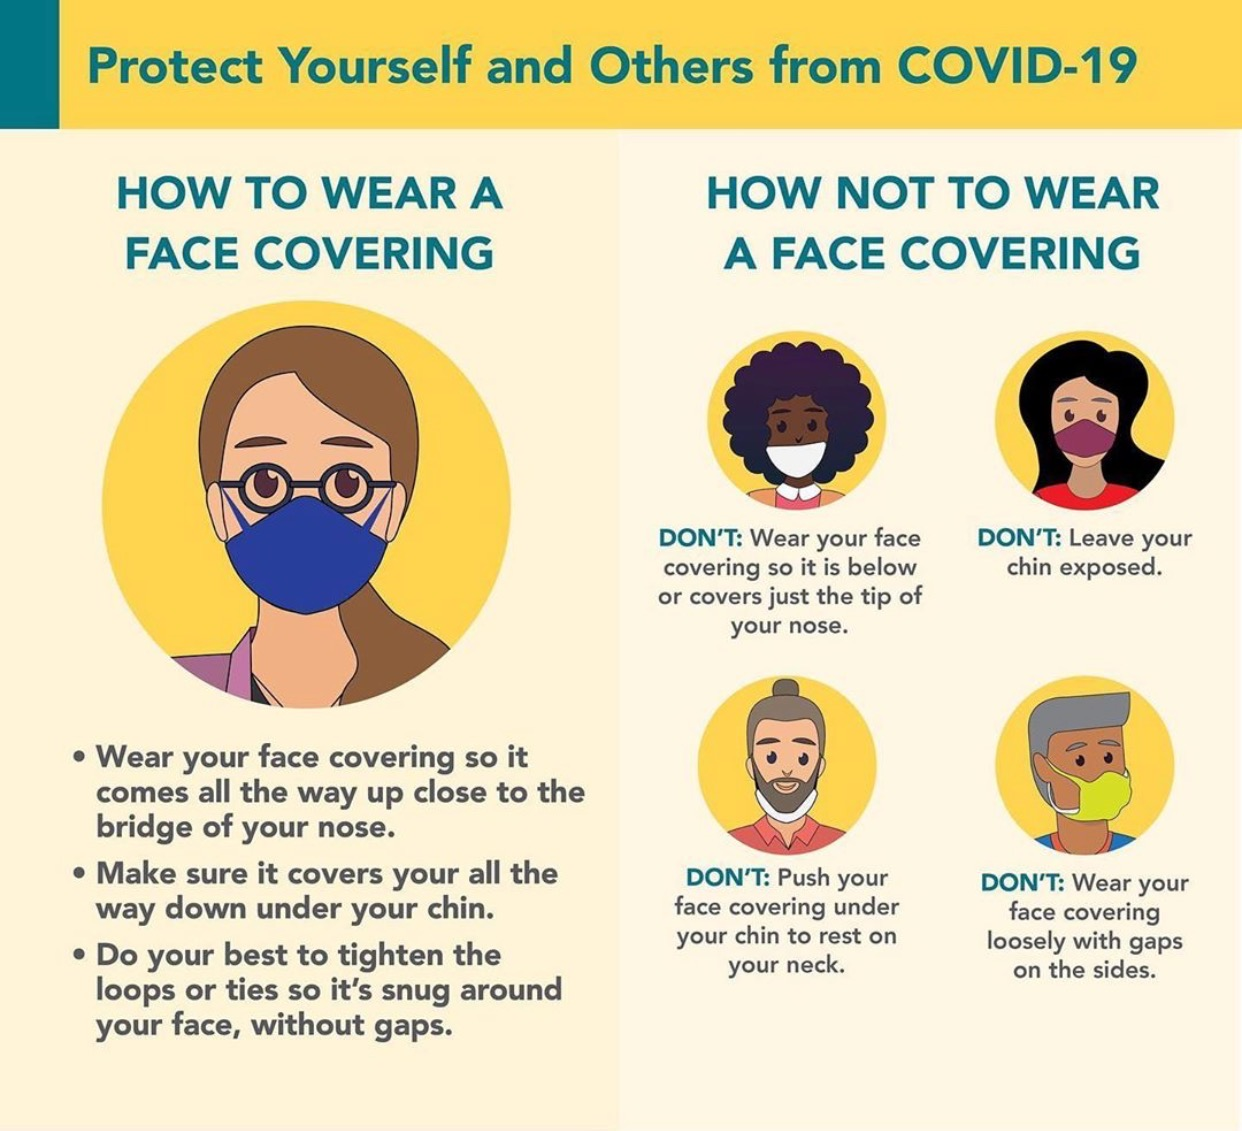 Protect Yourself and Others from COVID-19 English Page 1